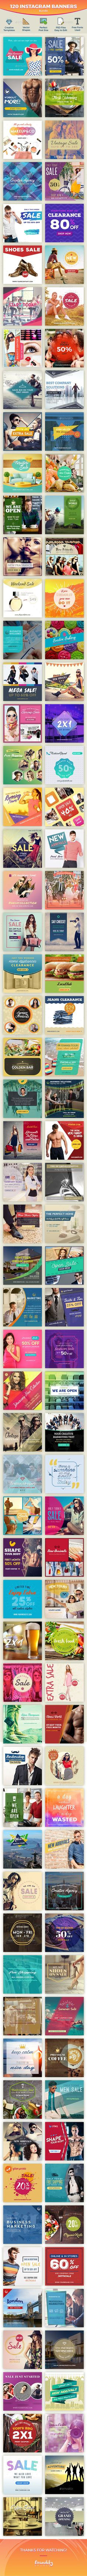 Instagram Banners Bundle - Social Media Web Elements